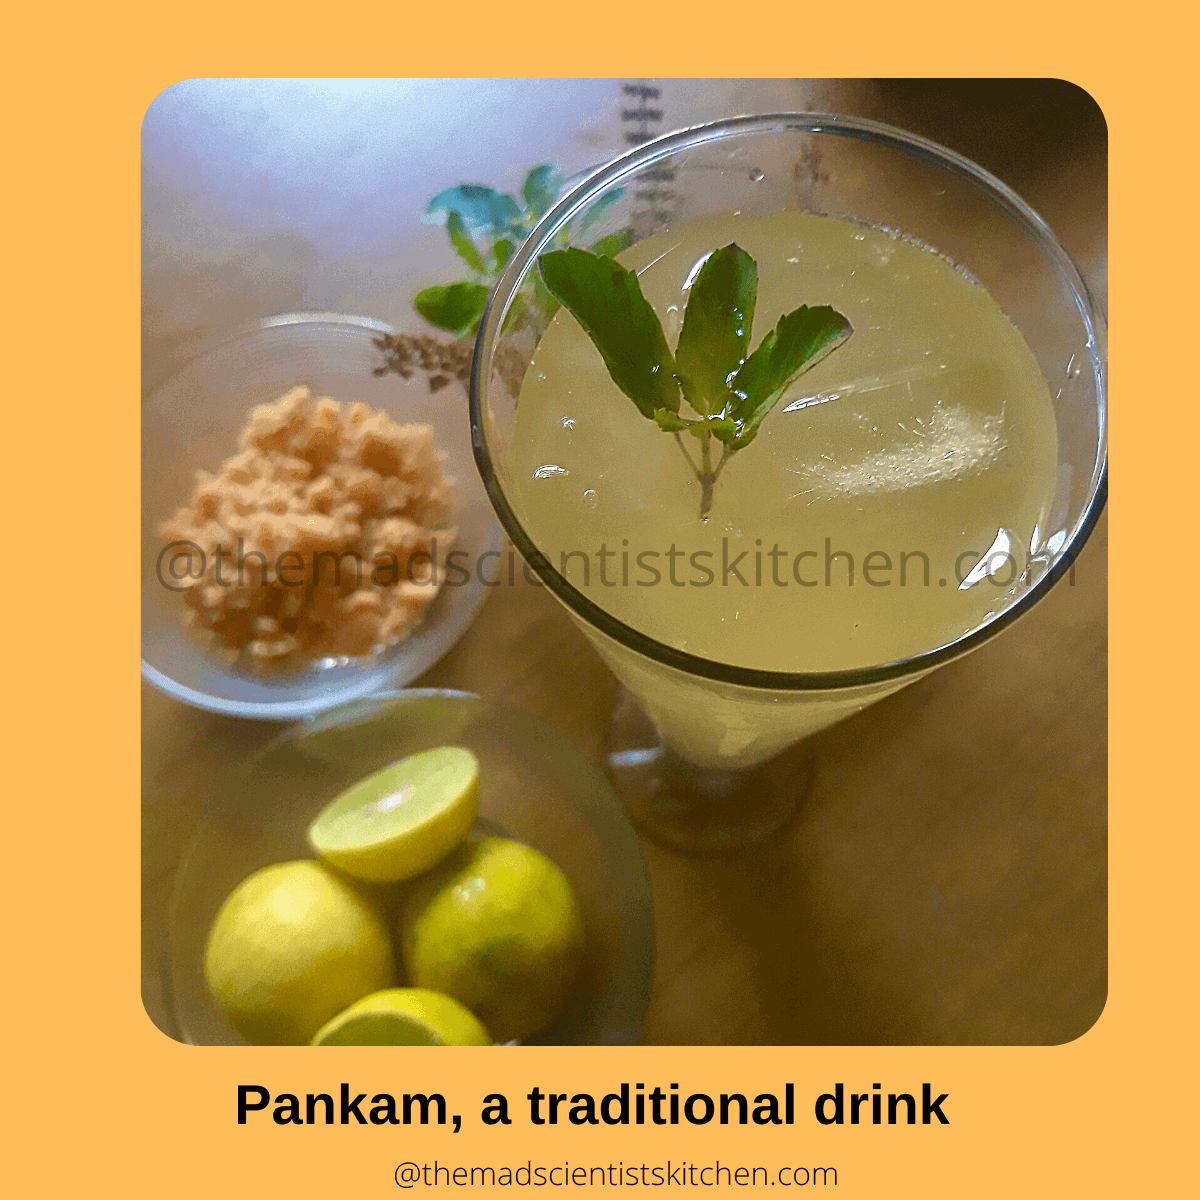 Pankam is a tradition lemonade made with jaggery as the sweetner